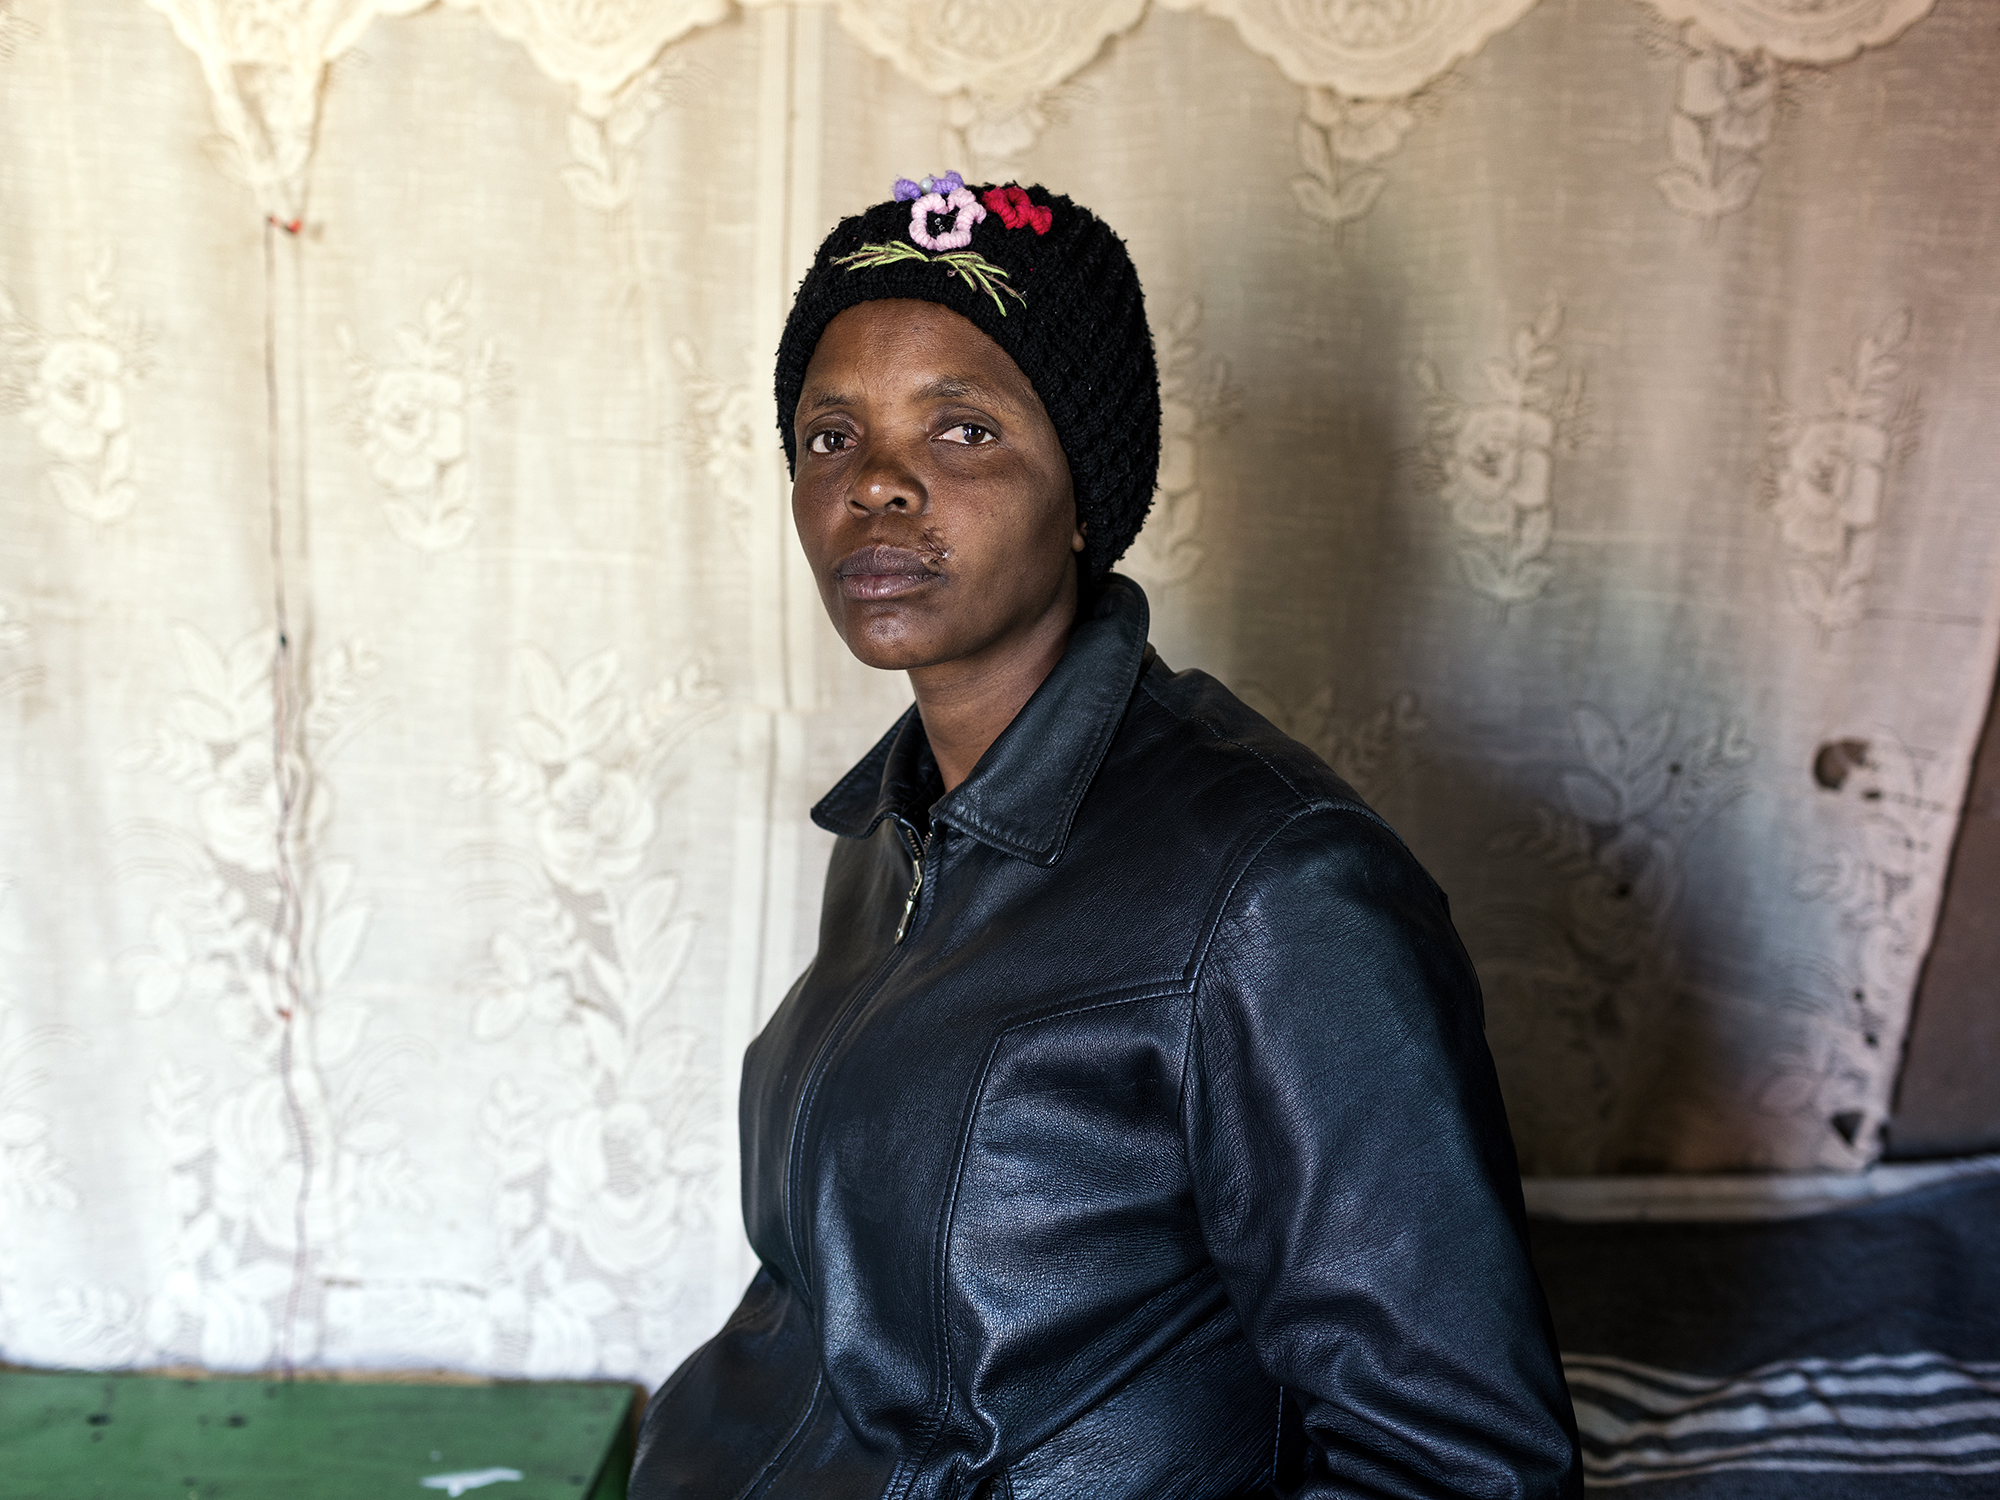 Victoria Matjiu, 37, Rubber bullet injury, Motlhotlo Village, Mapela, Limpopo, Northern Limb